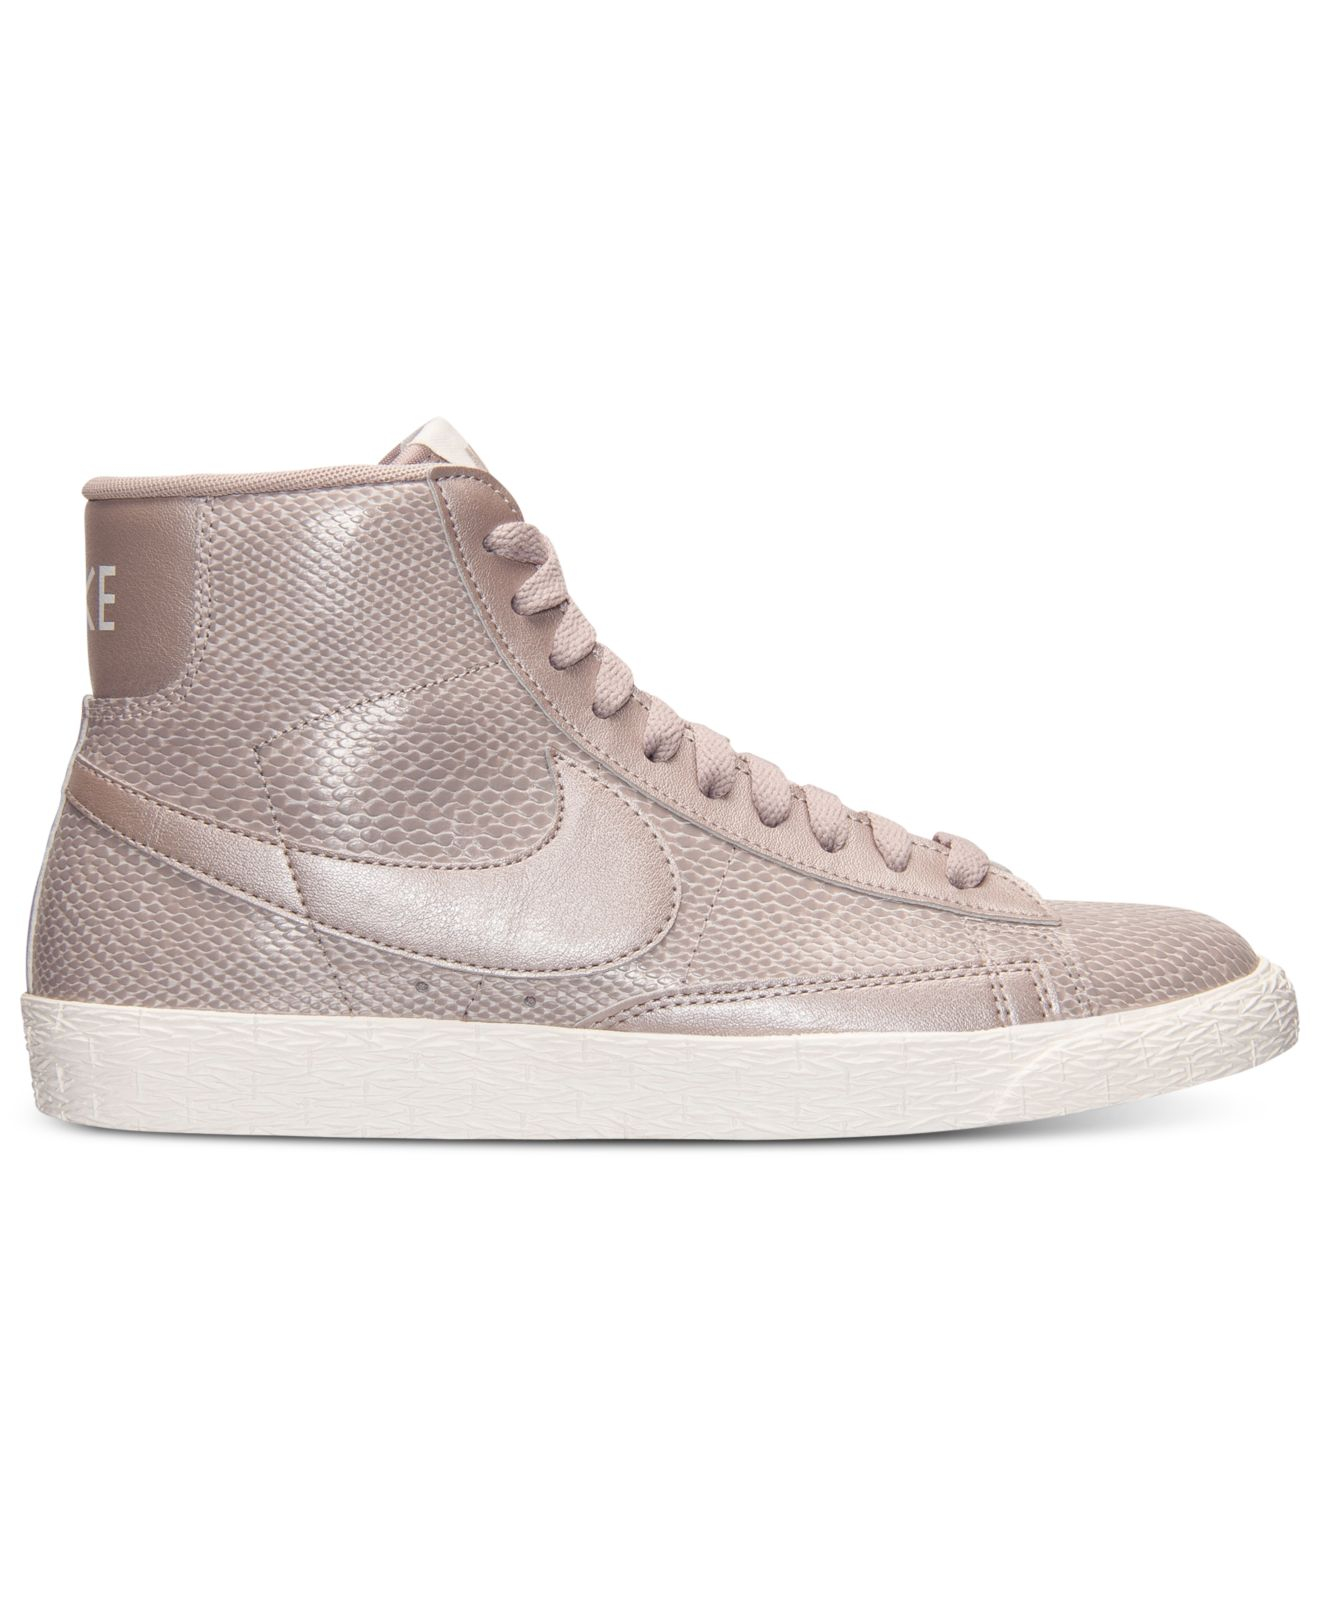 nike womens blazer mid leather premium casual sneakers from finish line